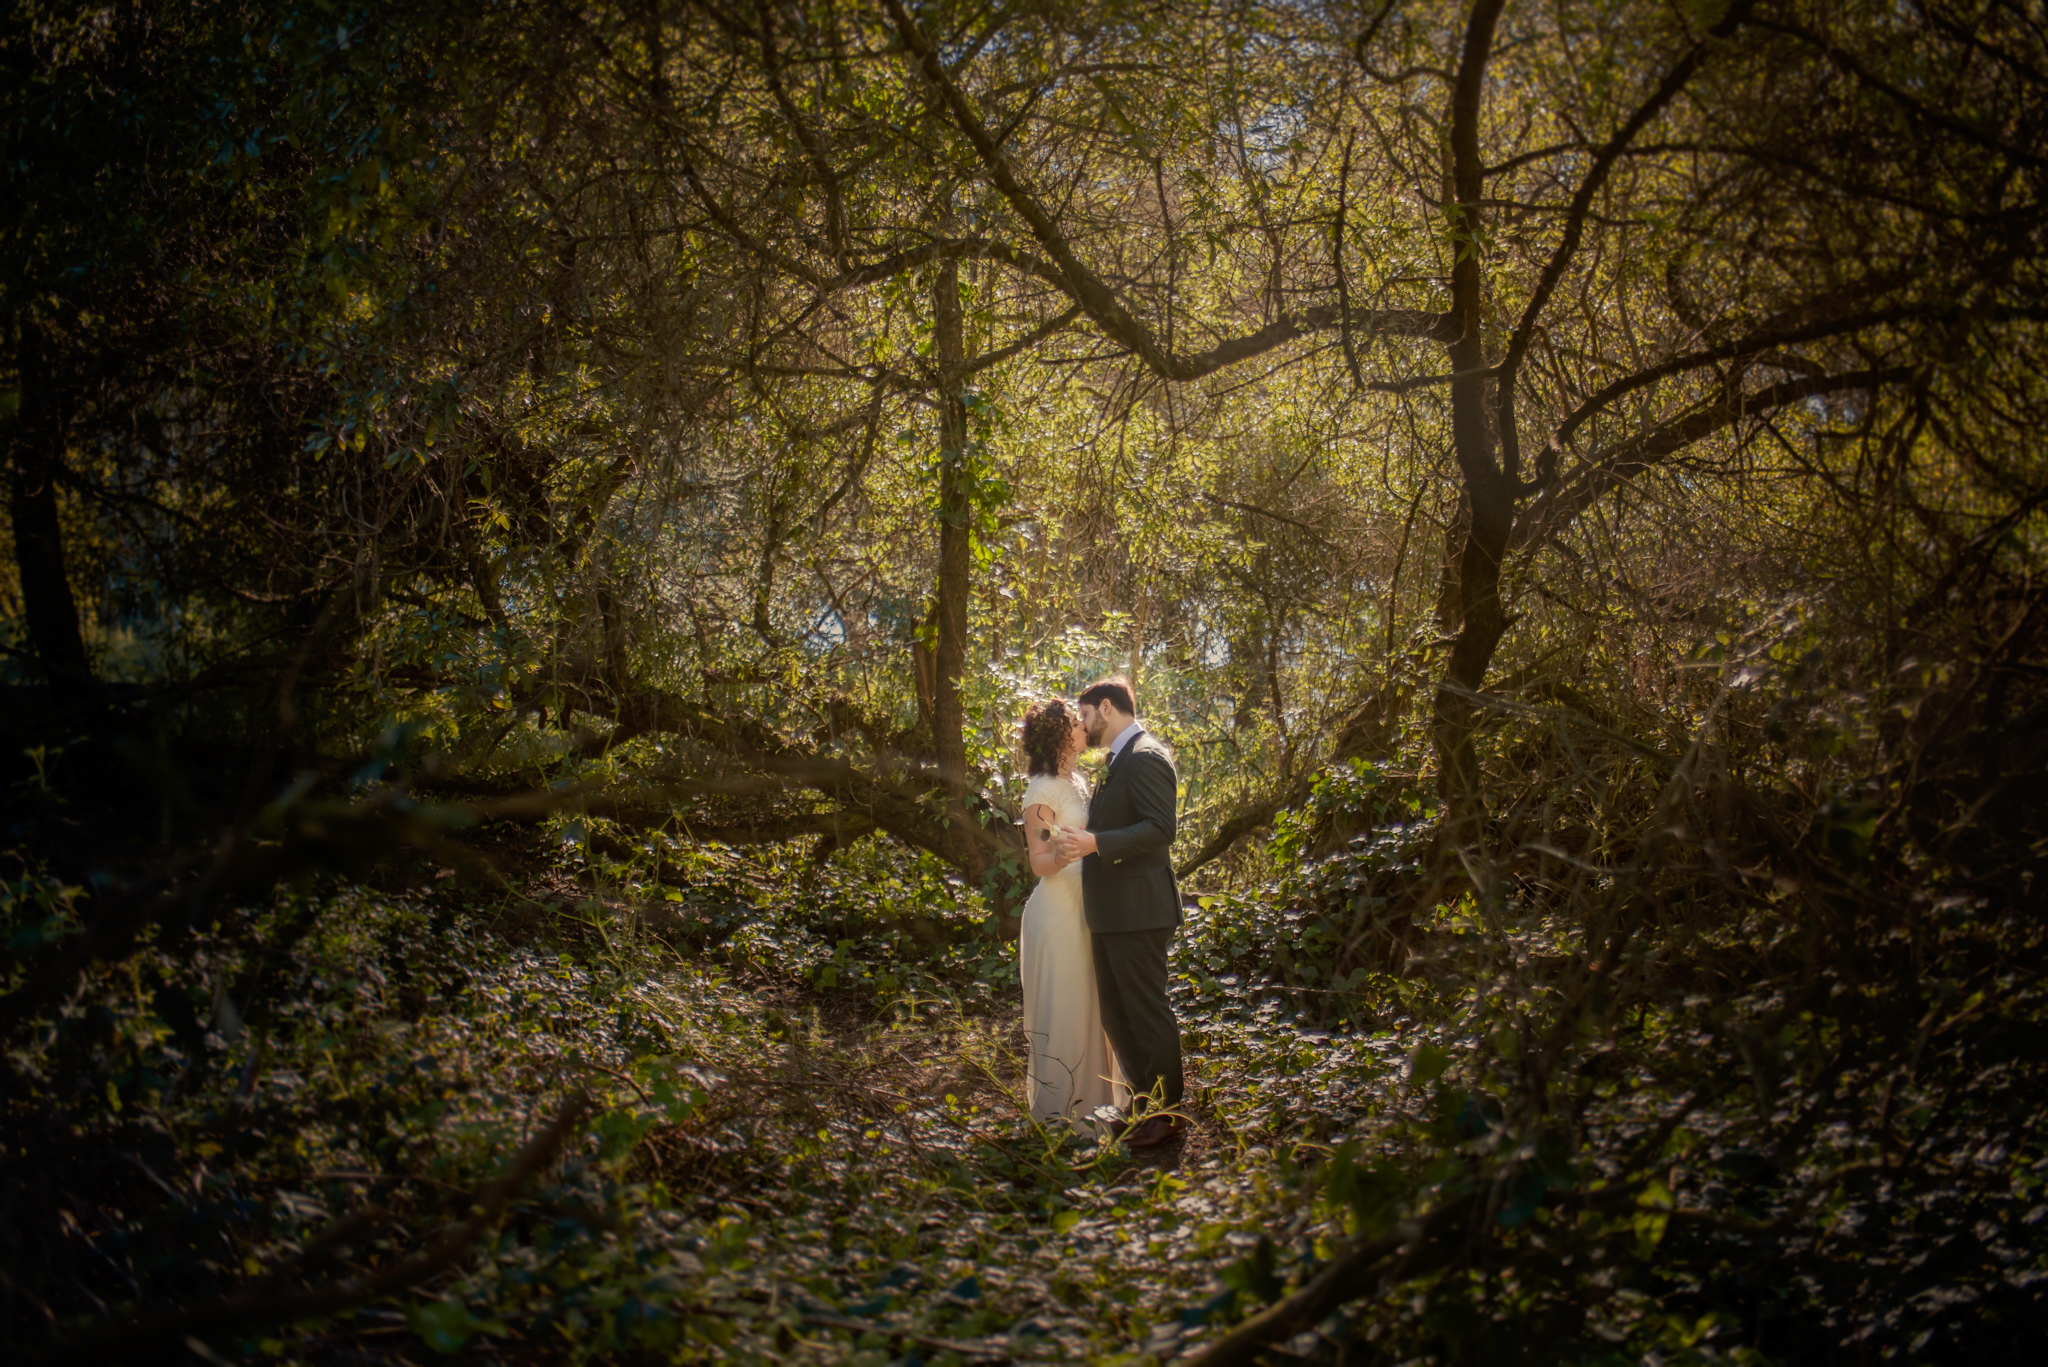 romantic bride and groom moment  in forest- photo by Chrisman Studios